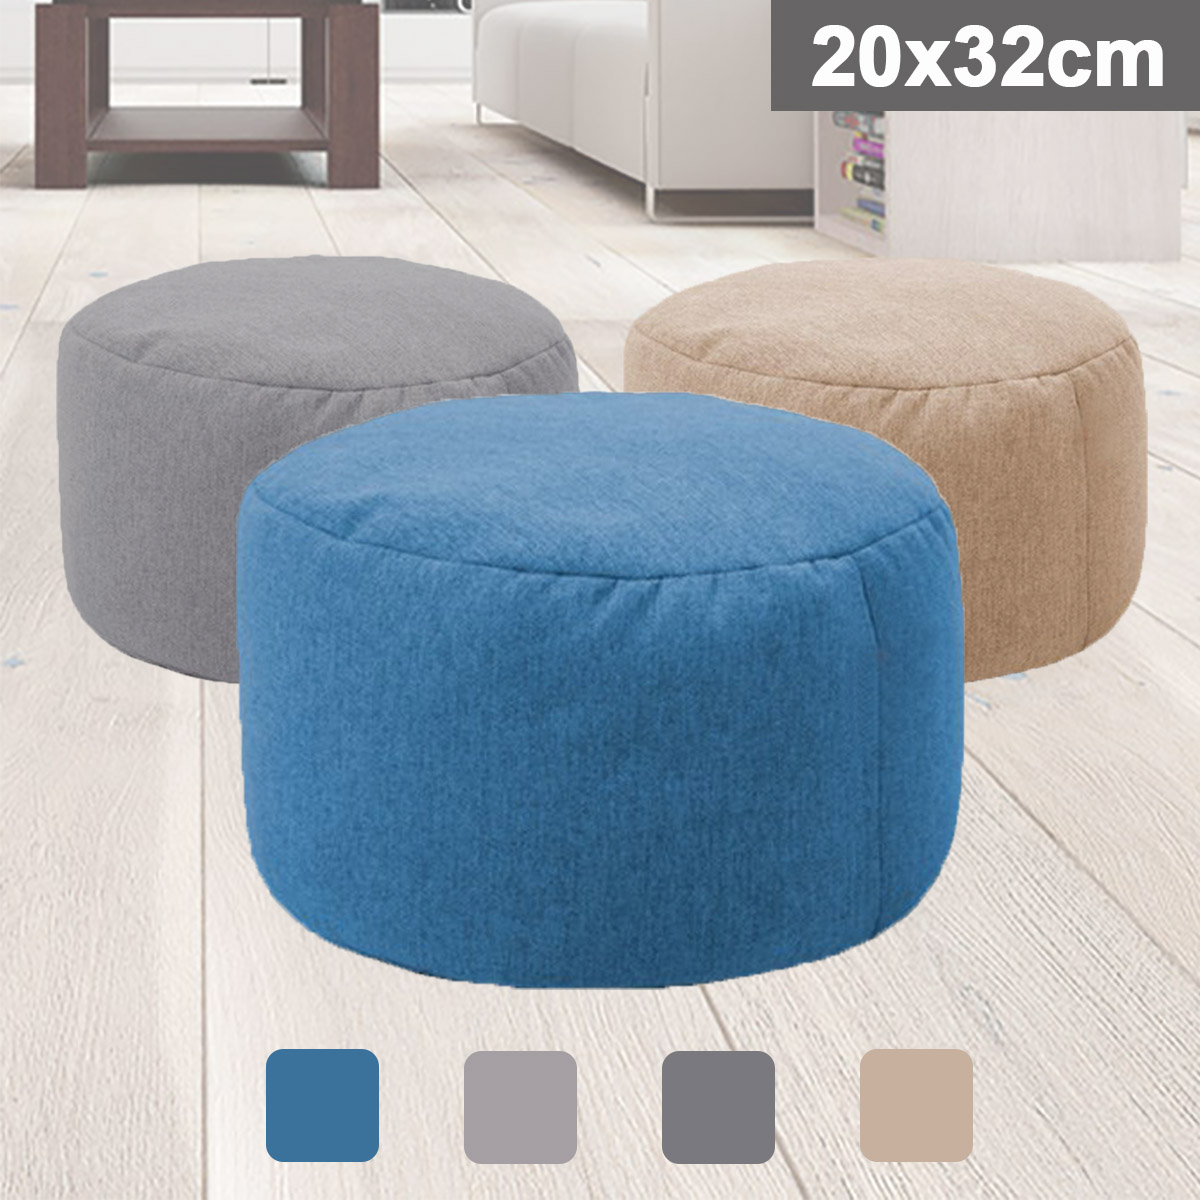 Small Round Beanbag Sofas Cover Waterproof Gaming Bed Chair Seat Bean Bag Solid Color Lounger Chair Sofa Cotton Linen Chair Cove